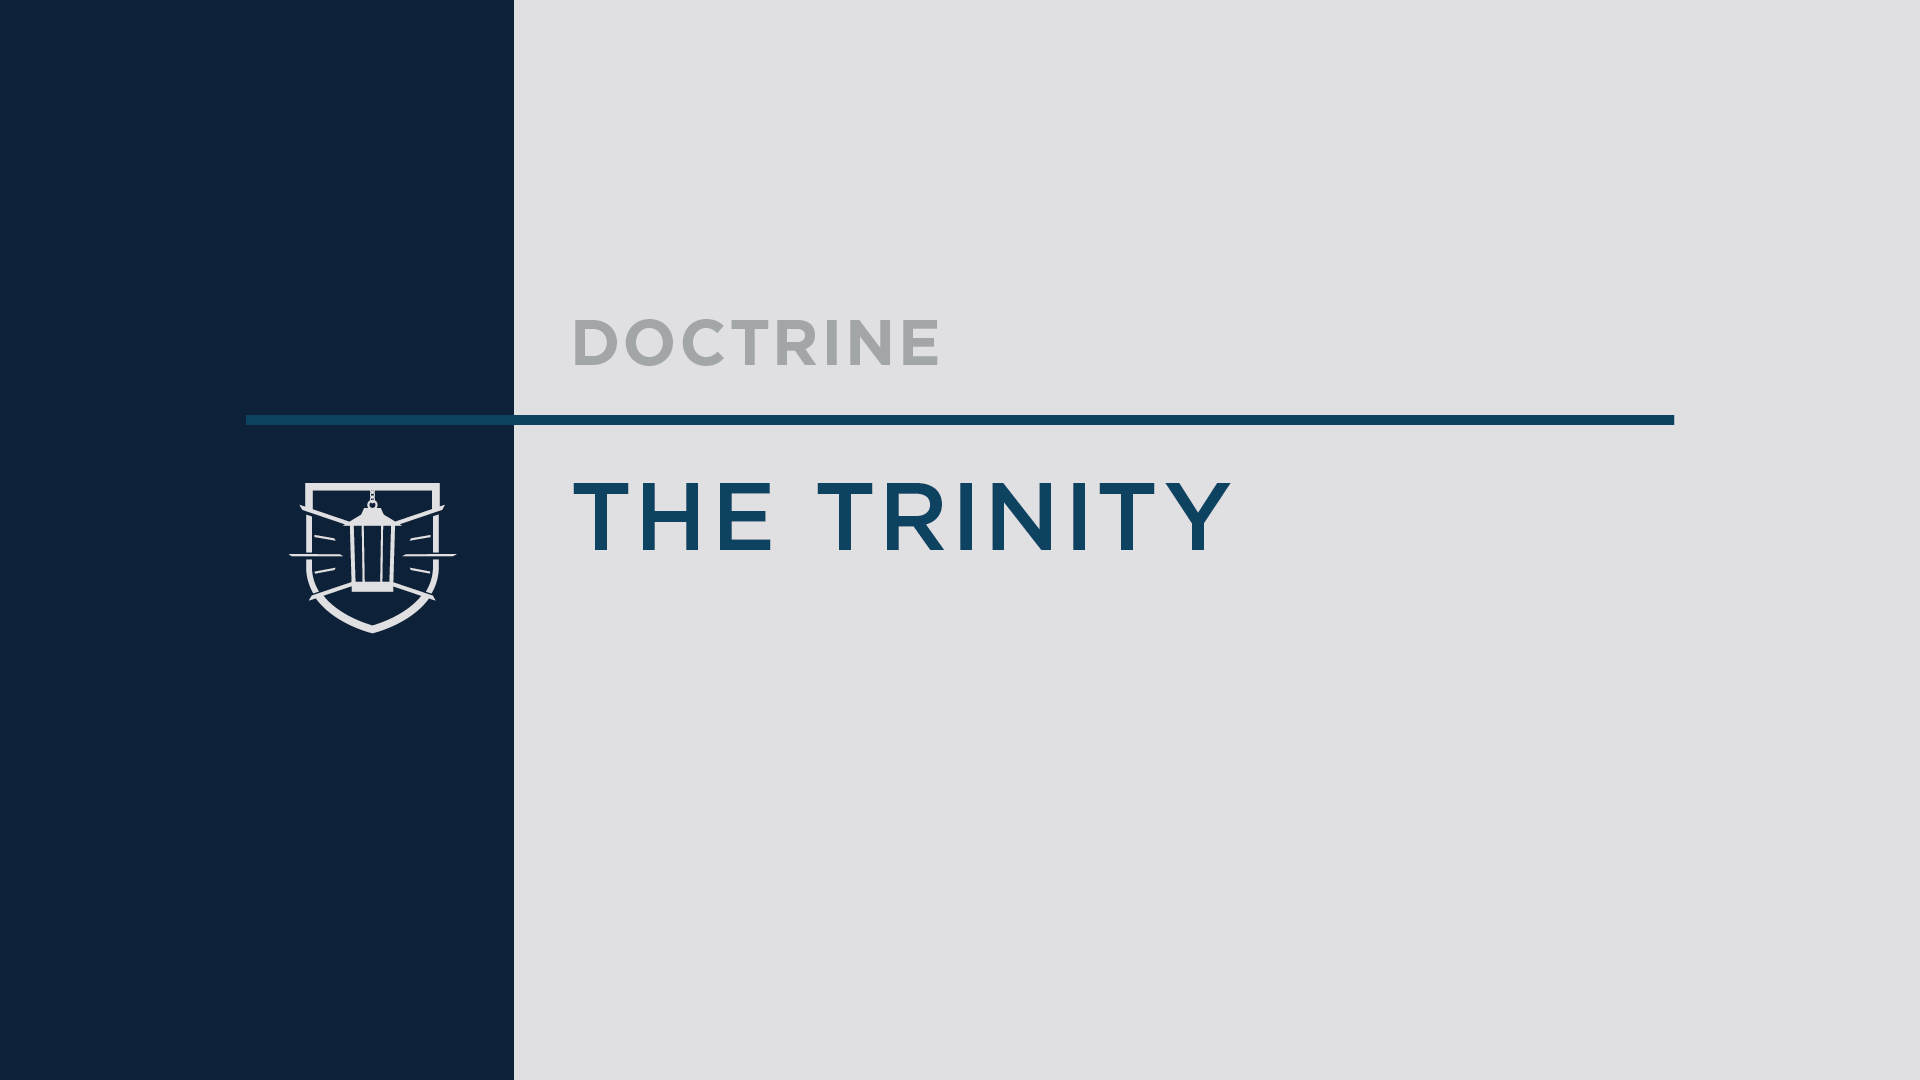 Doctrine 3: The Trinity